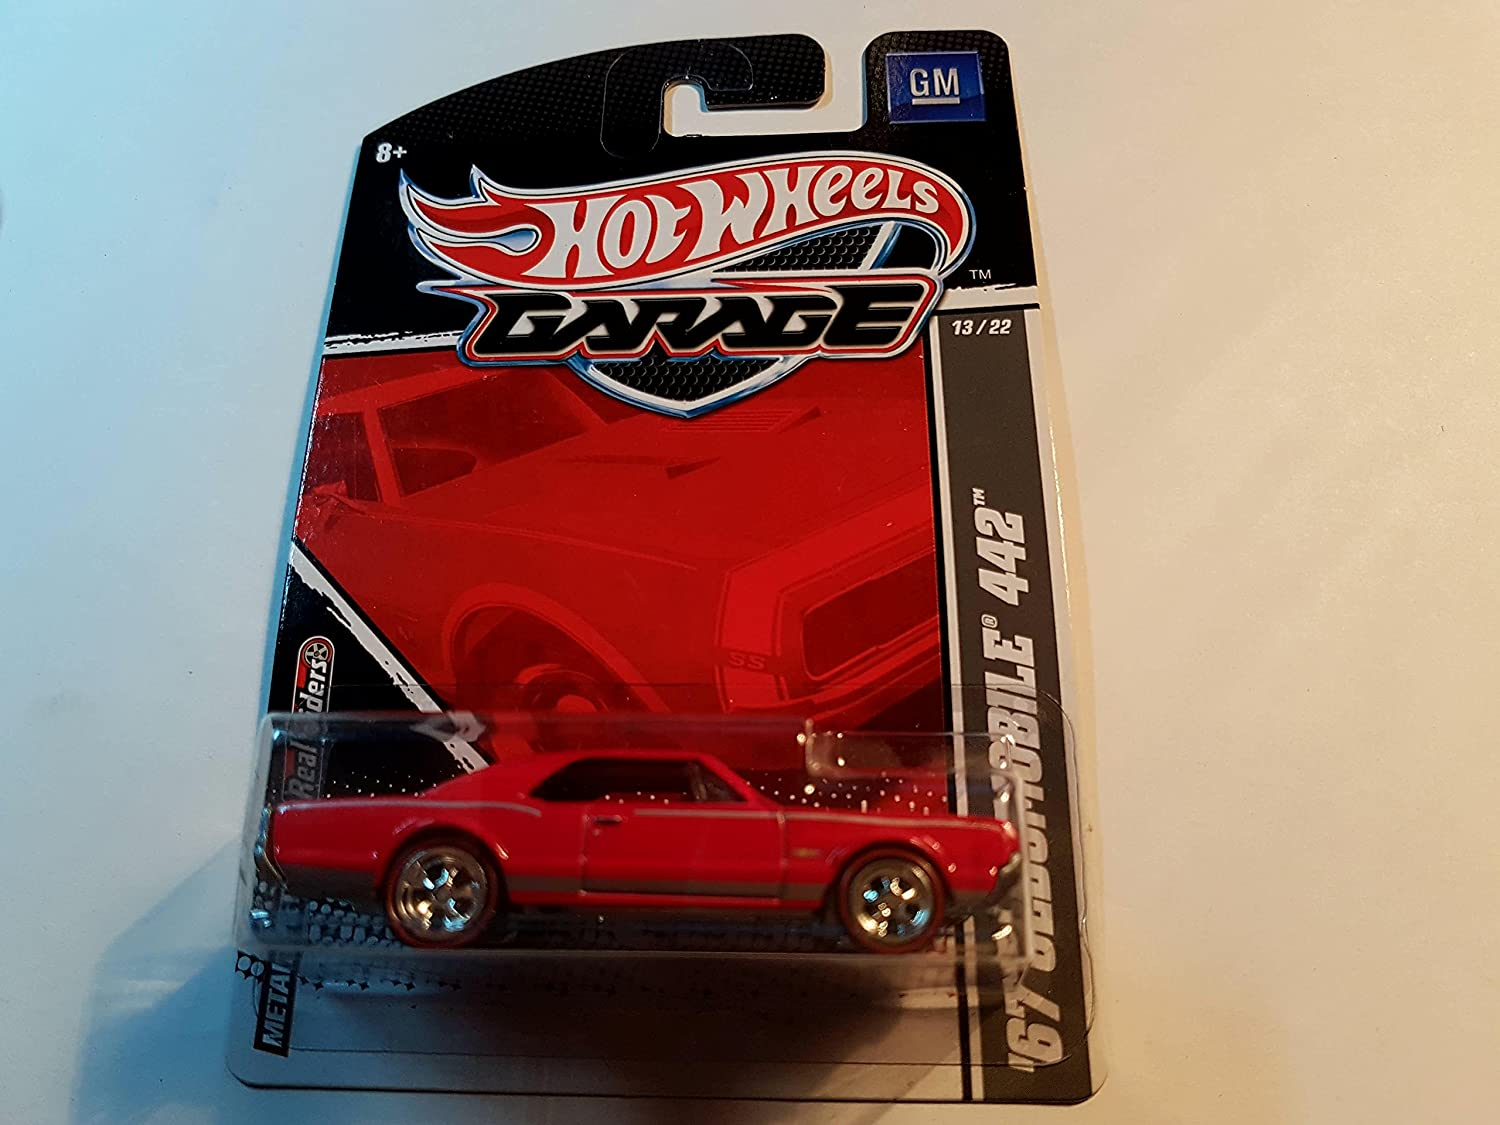 2011 Hot Wheels Garage GM Series '67 Oldsmobile 442 ROT  13/22 by Hot Wheels